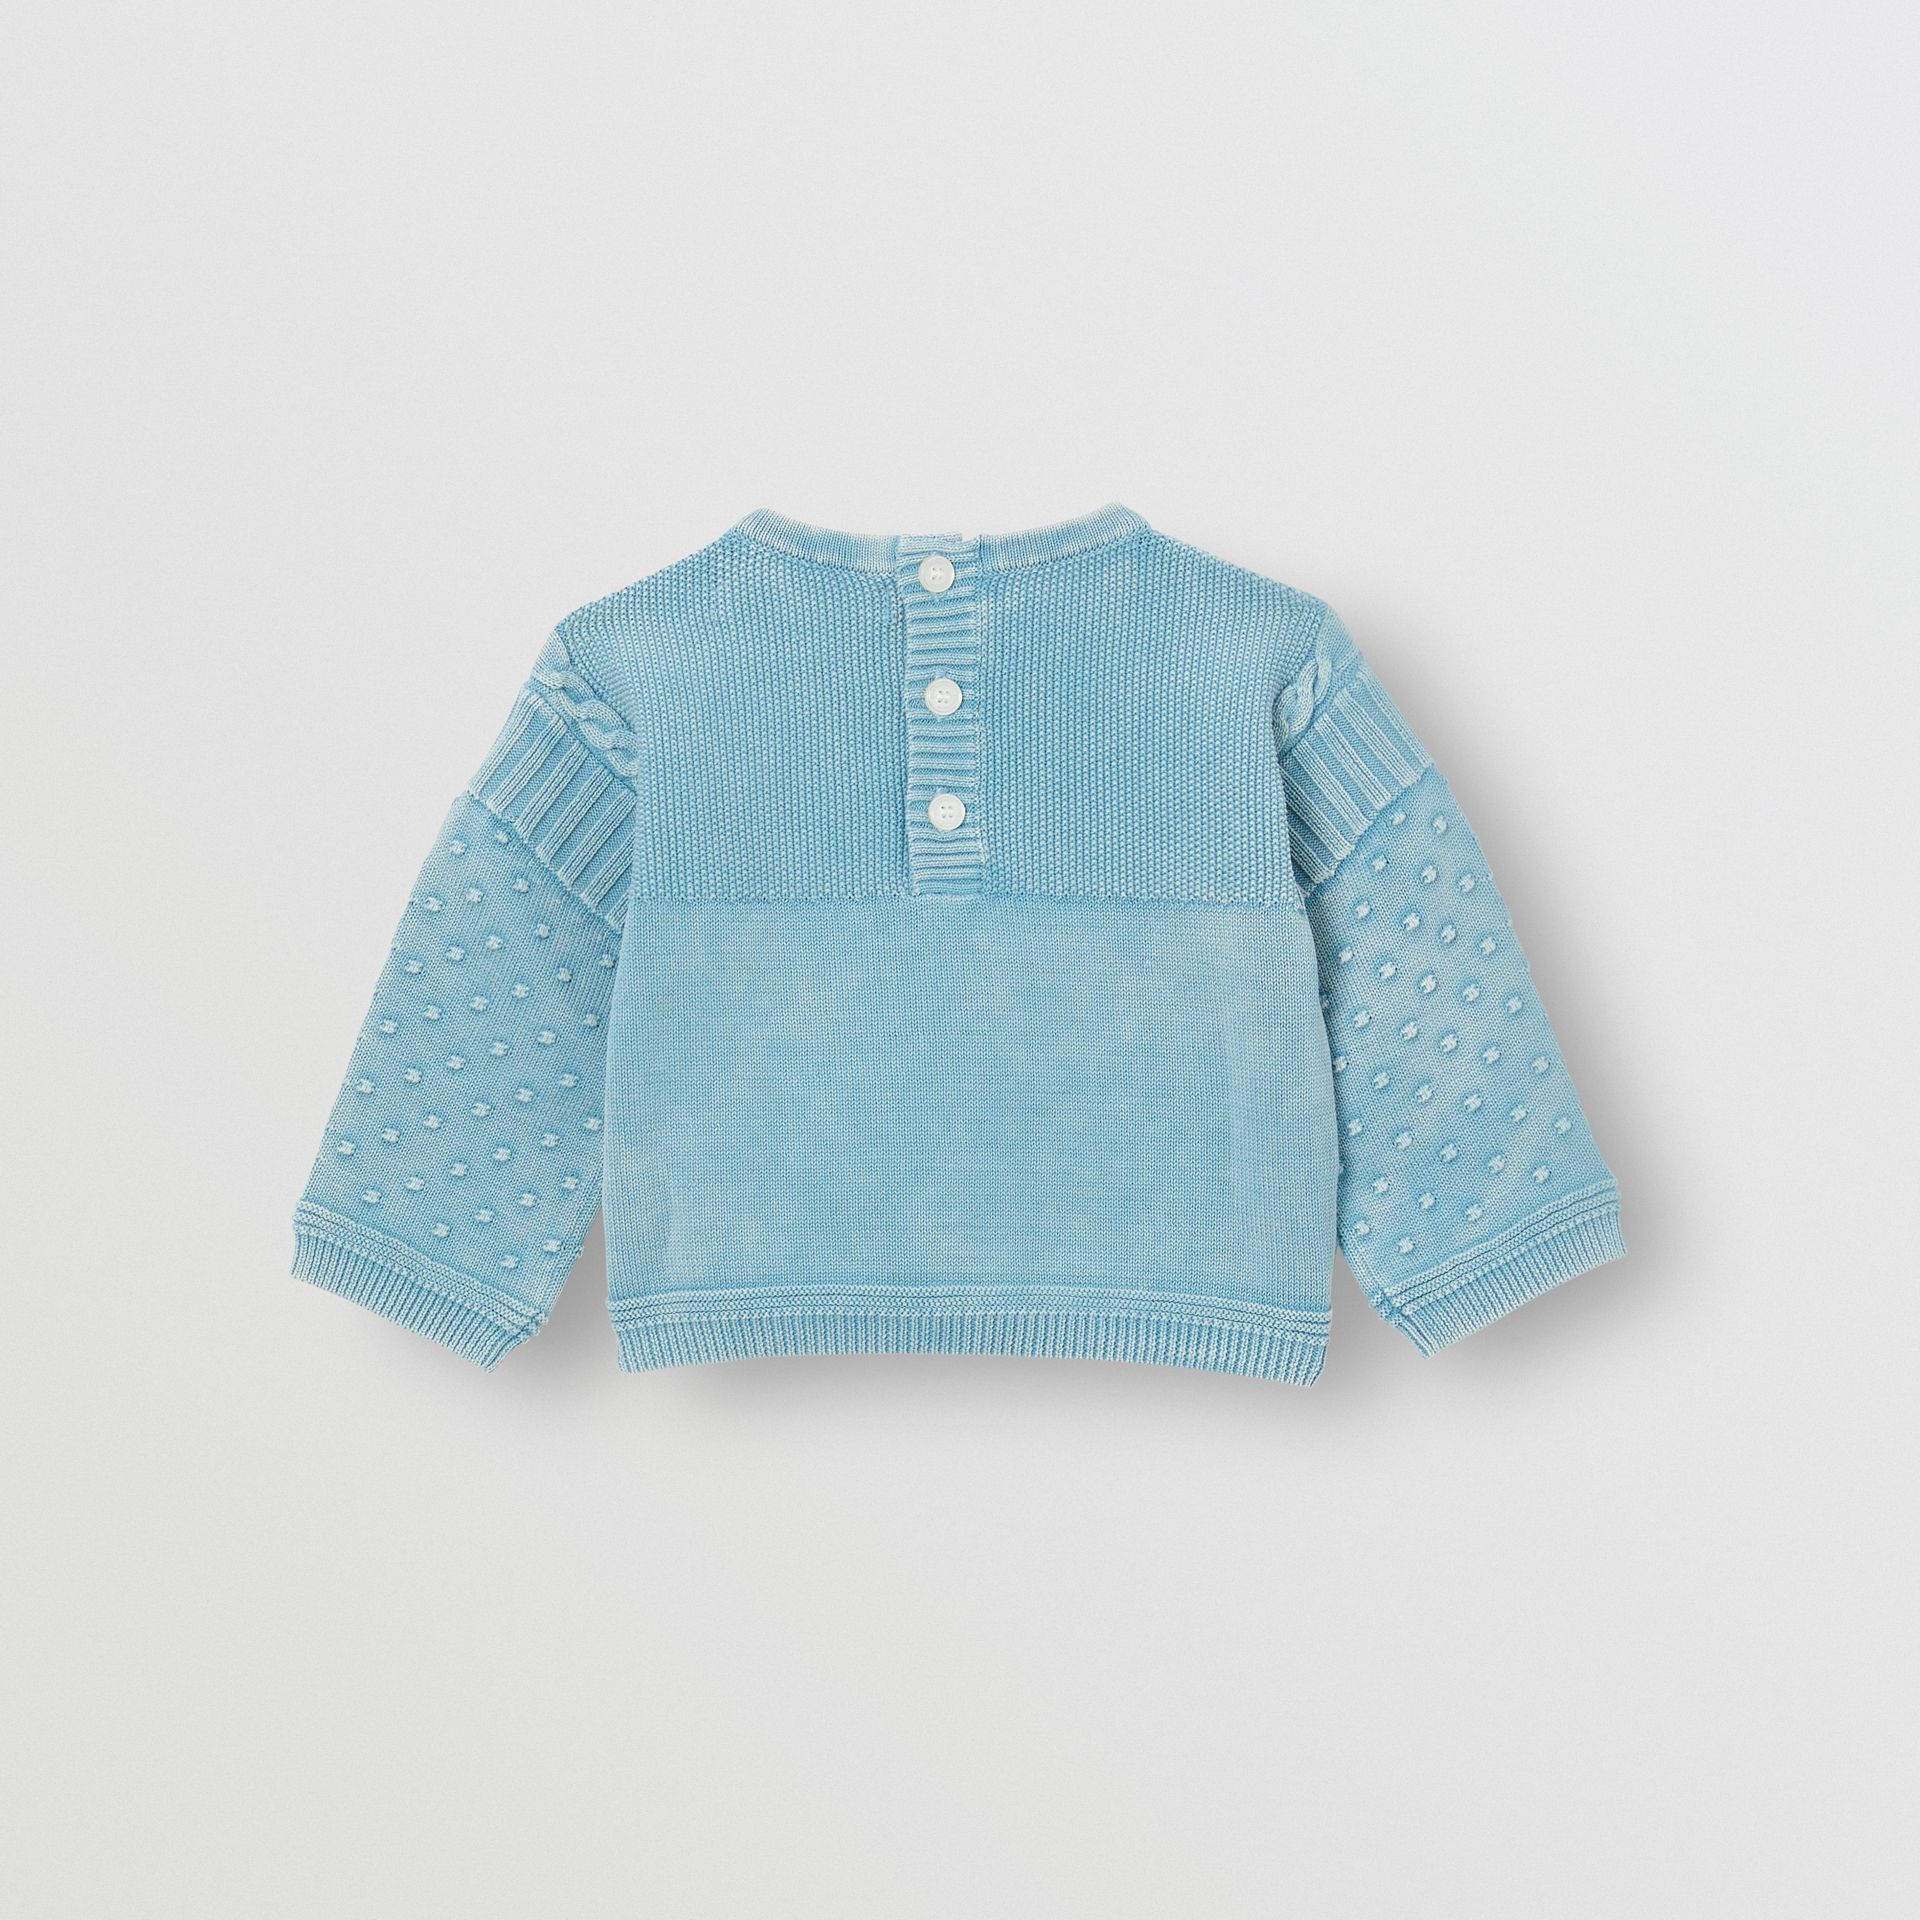 Contrast Knit Cotton Two-piece Baby Gift Set in Opal Blue - Children | Burberry - gallery image 4